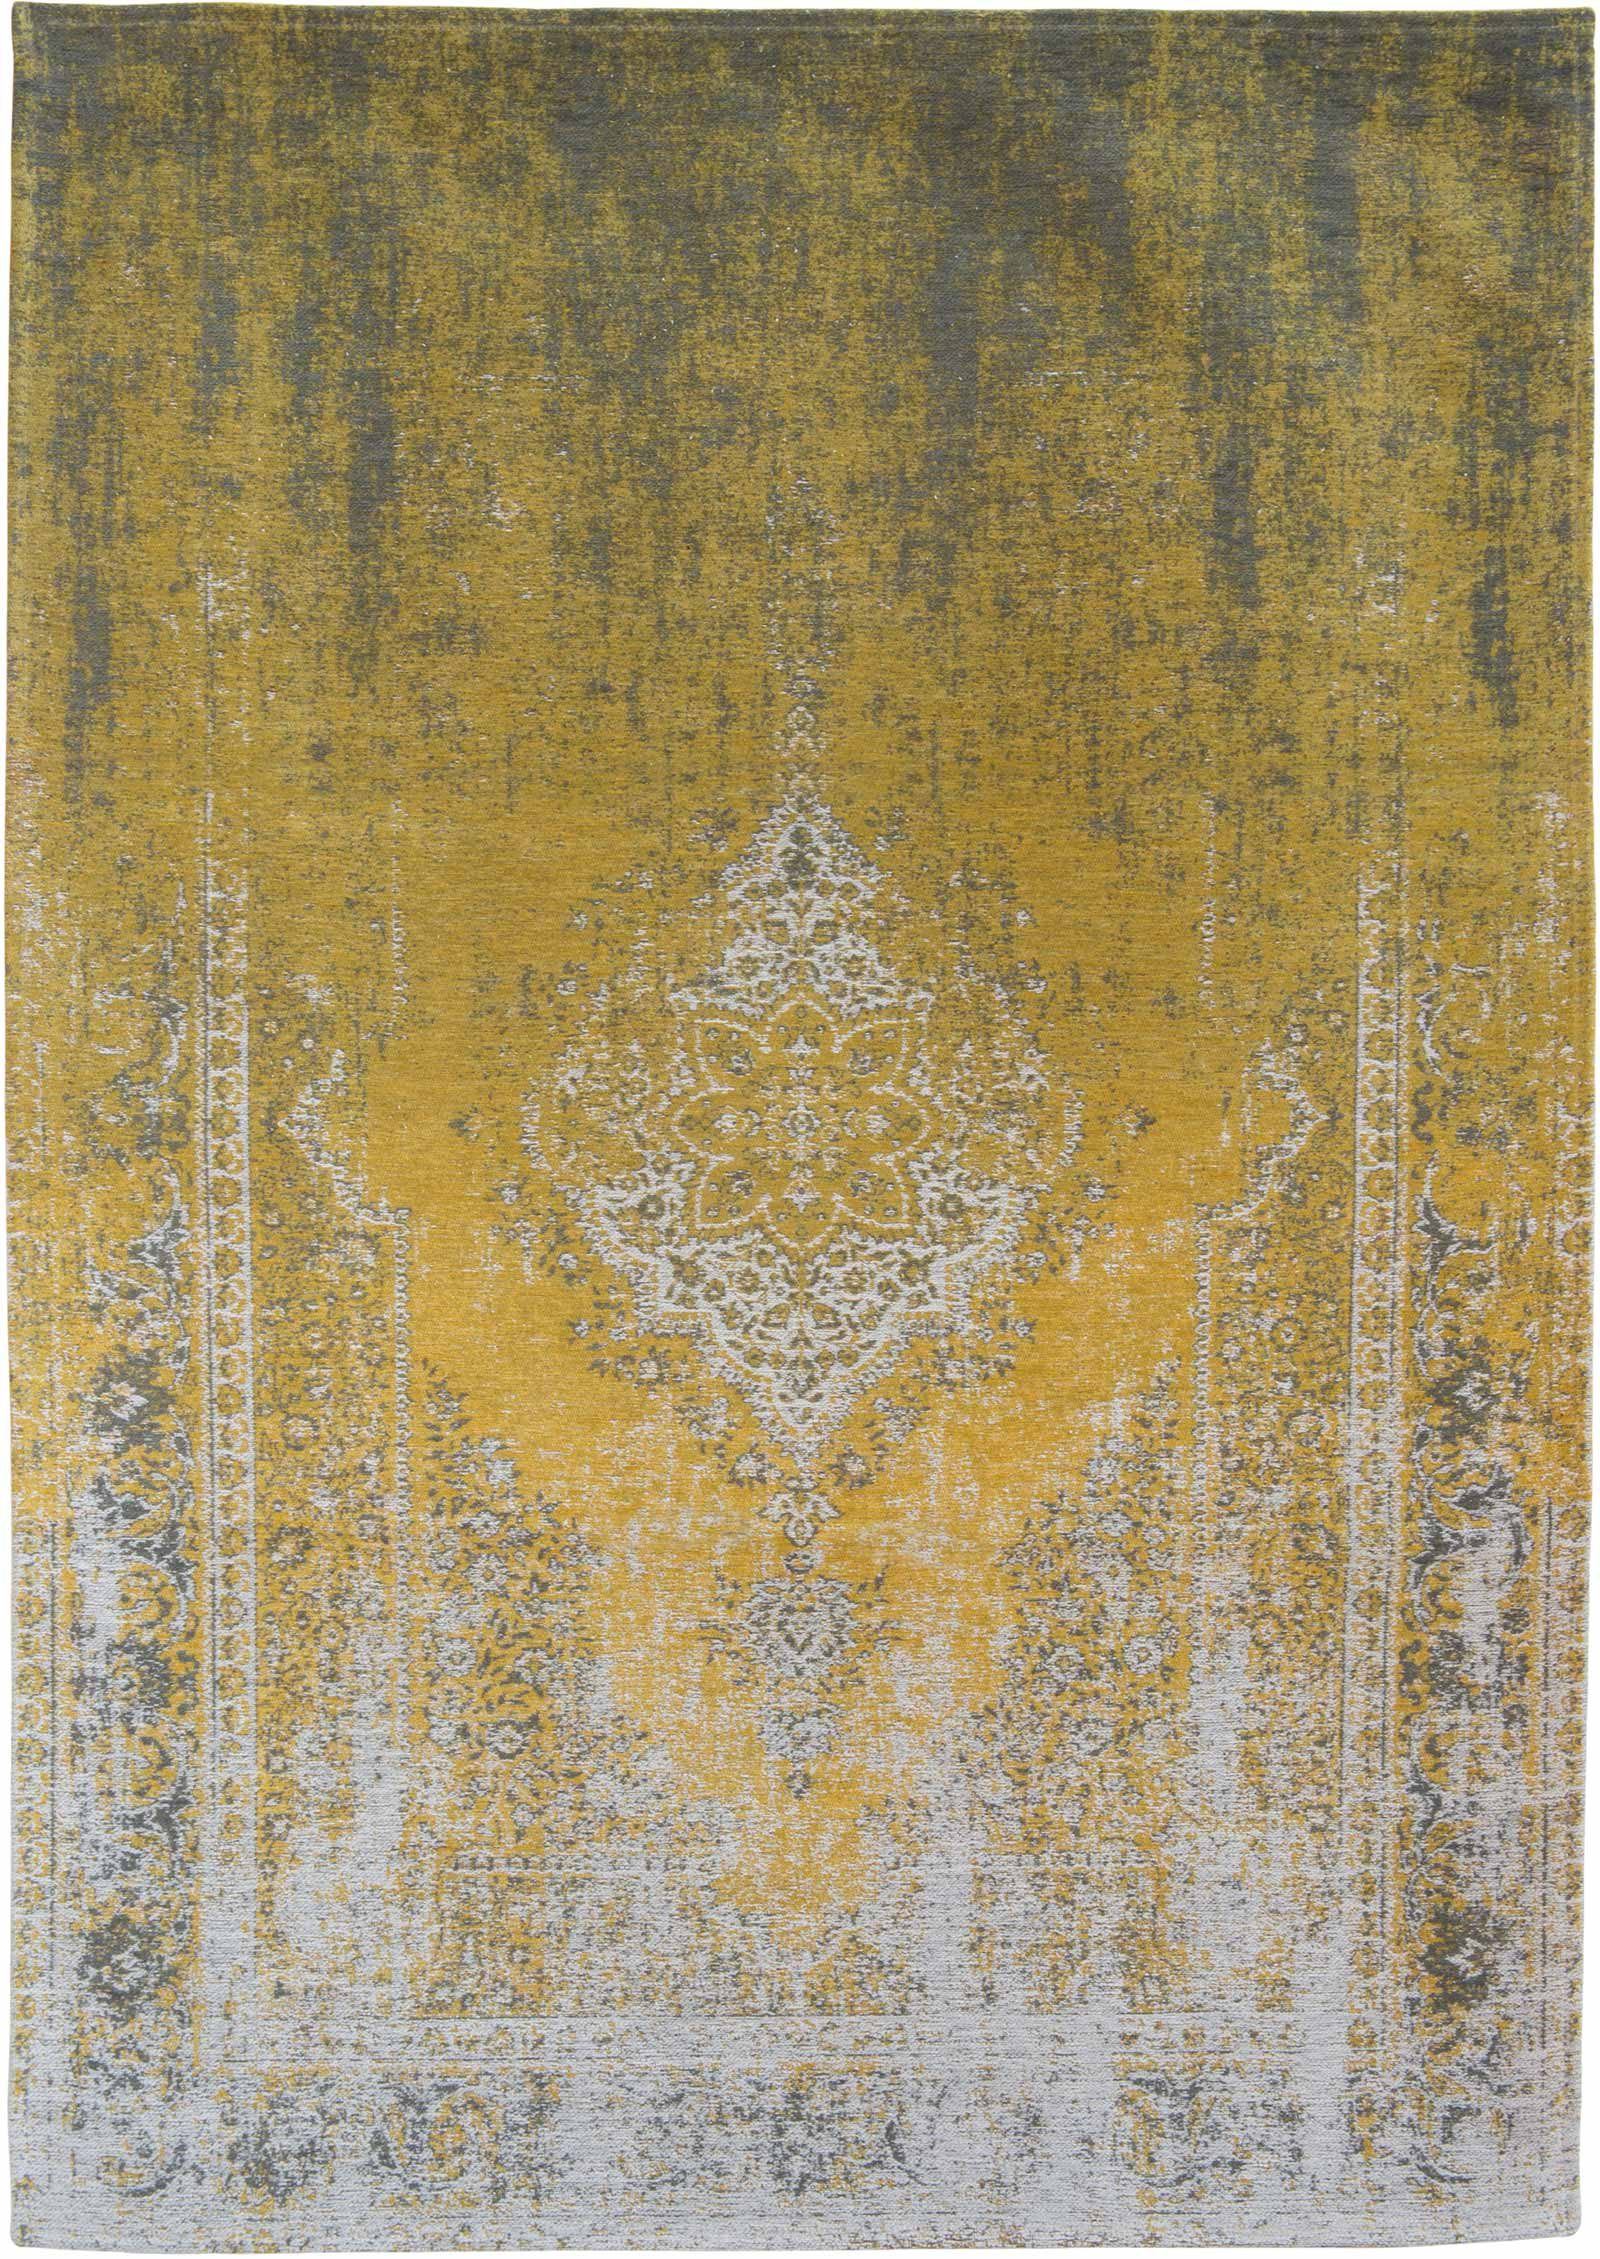 rugs Louis De Poortere LX8638 Fading World Generation Yuzu Cream